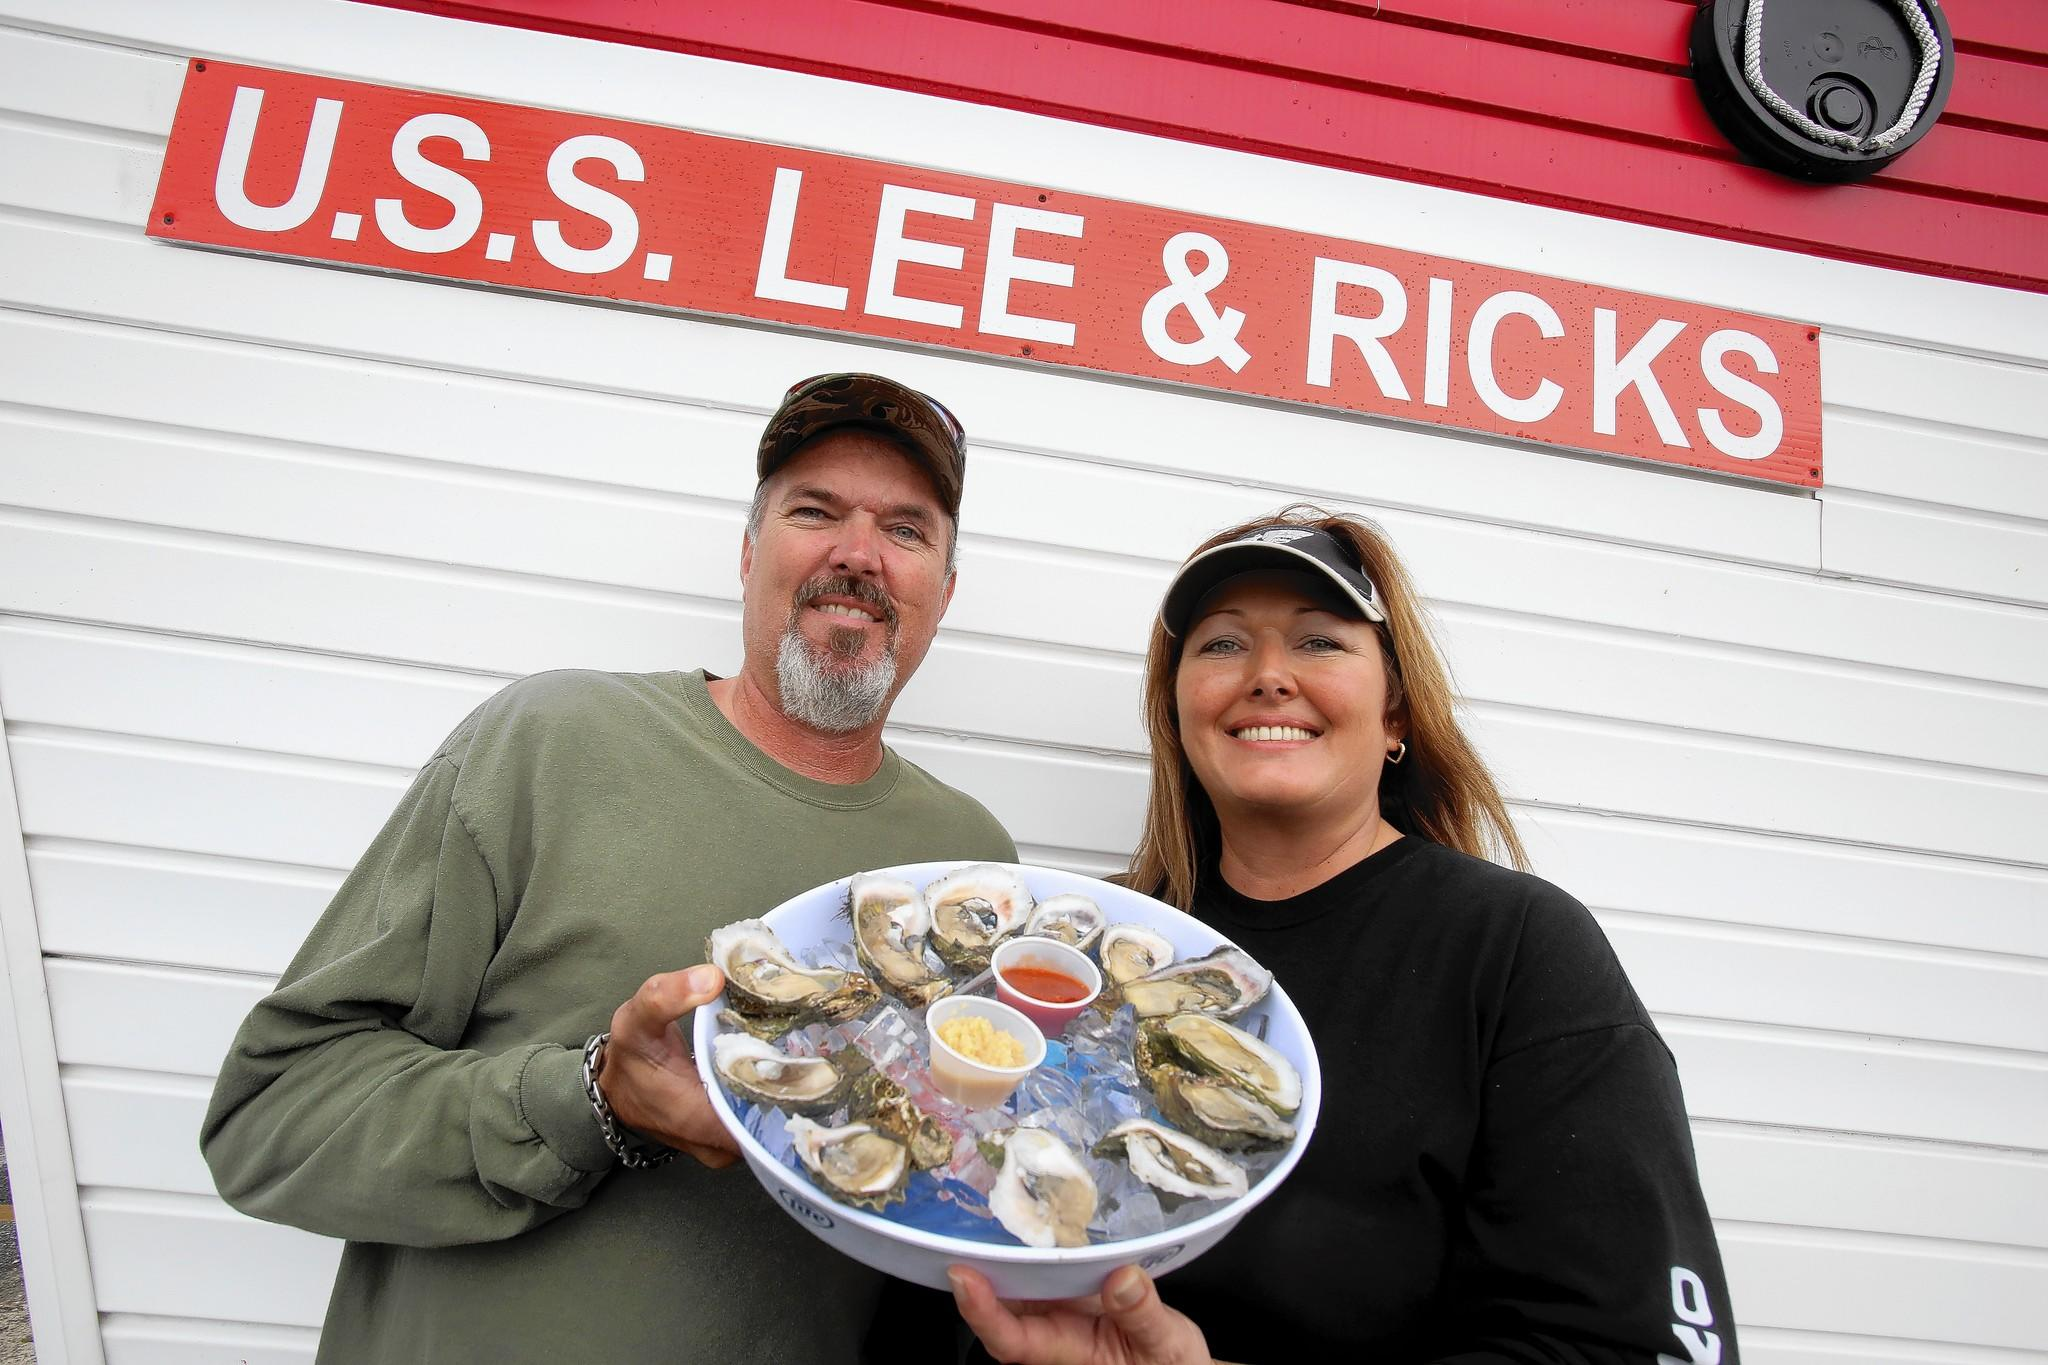 Gene Richter and Trish Blunt carry on the family tradition at Lee & Rick's.